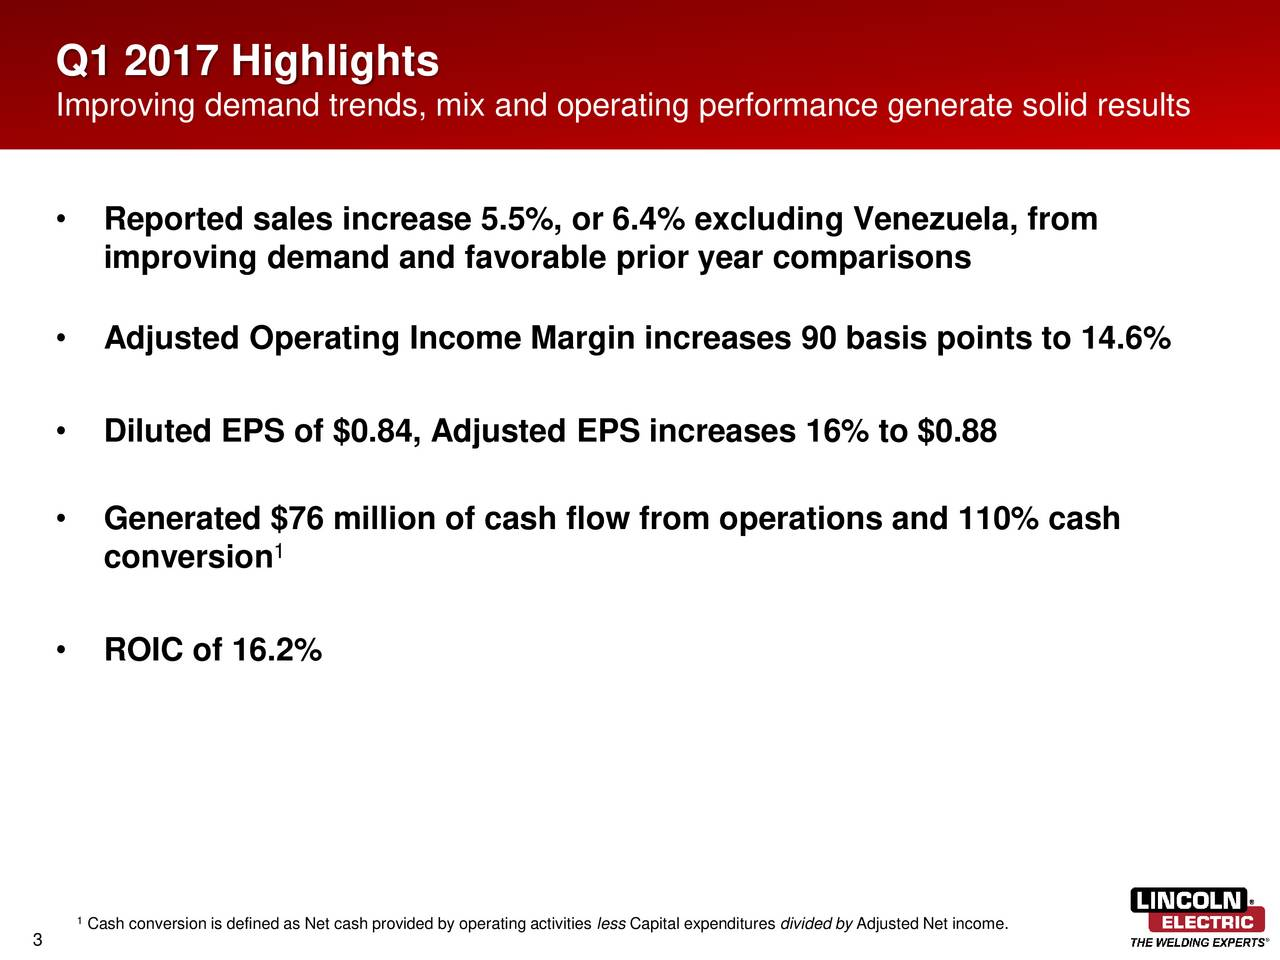 Improving demand trends, mix and operating performance generate solid results Reported sales increase 5.5%, or 6.4% excluding Venezuela, from improving demand and favorable prior year comparisons Adjusted Operating Income Margin increases 90 basis points to 14.6% Diluted EPS of $0.84, Adjusted EPS increases 16% to $0.88 Generated $76 million of cash flow from operations and 110% cash 1 conversion ROIC of 16.2% 1Cash conversion is defined as Net cash provided by operating activities less Capital expenditures divided by Adjusted Net income.